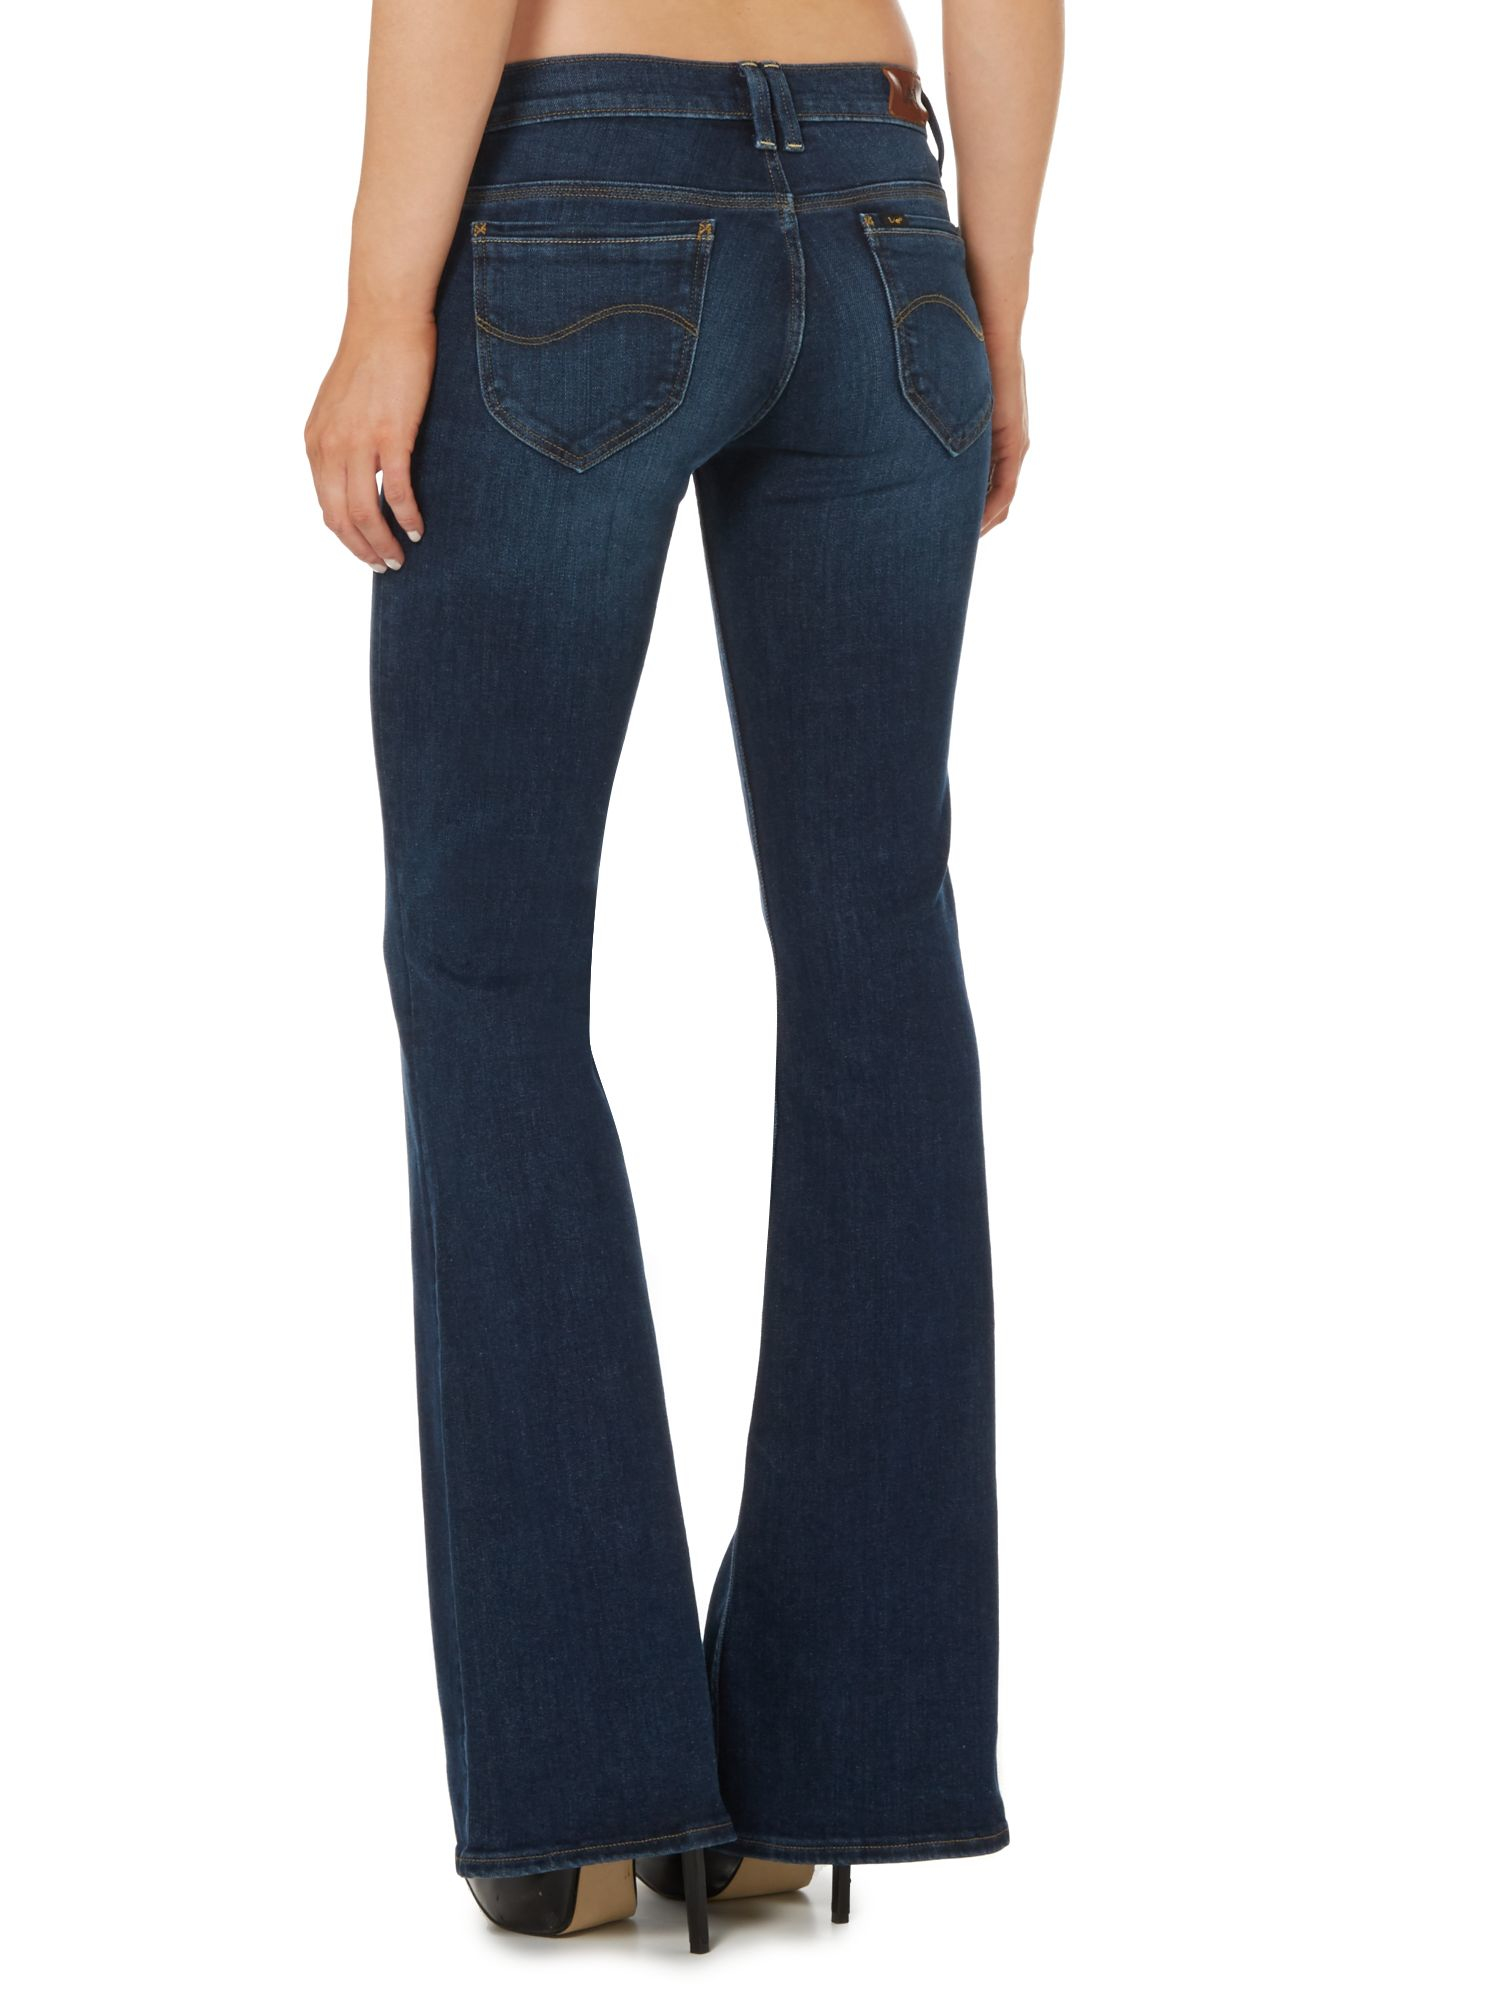 Lee jeans Annetta Flare Jean In Blue Notes in Blue | Lyst